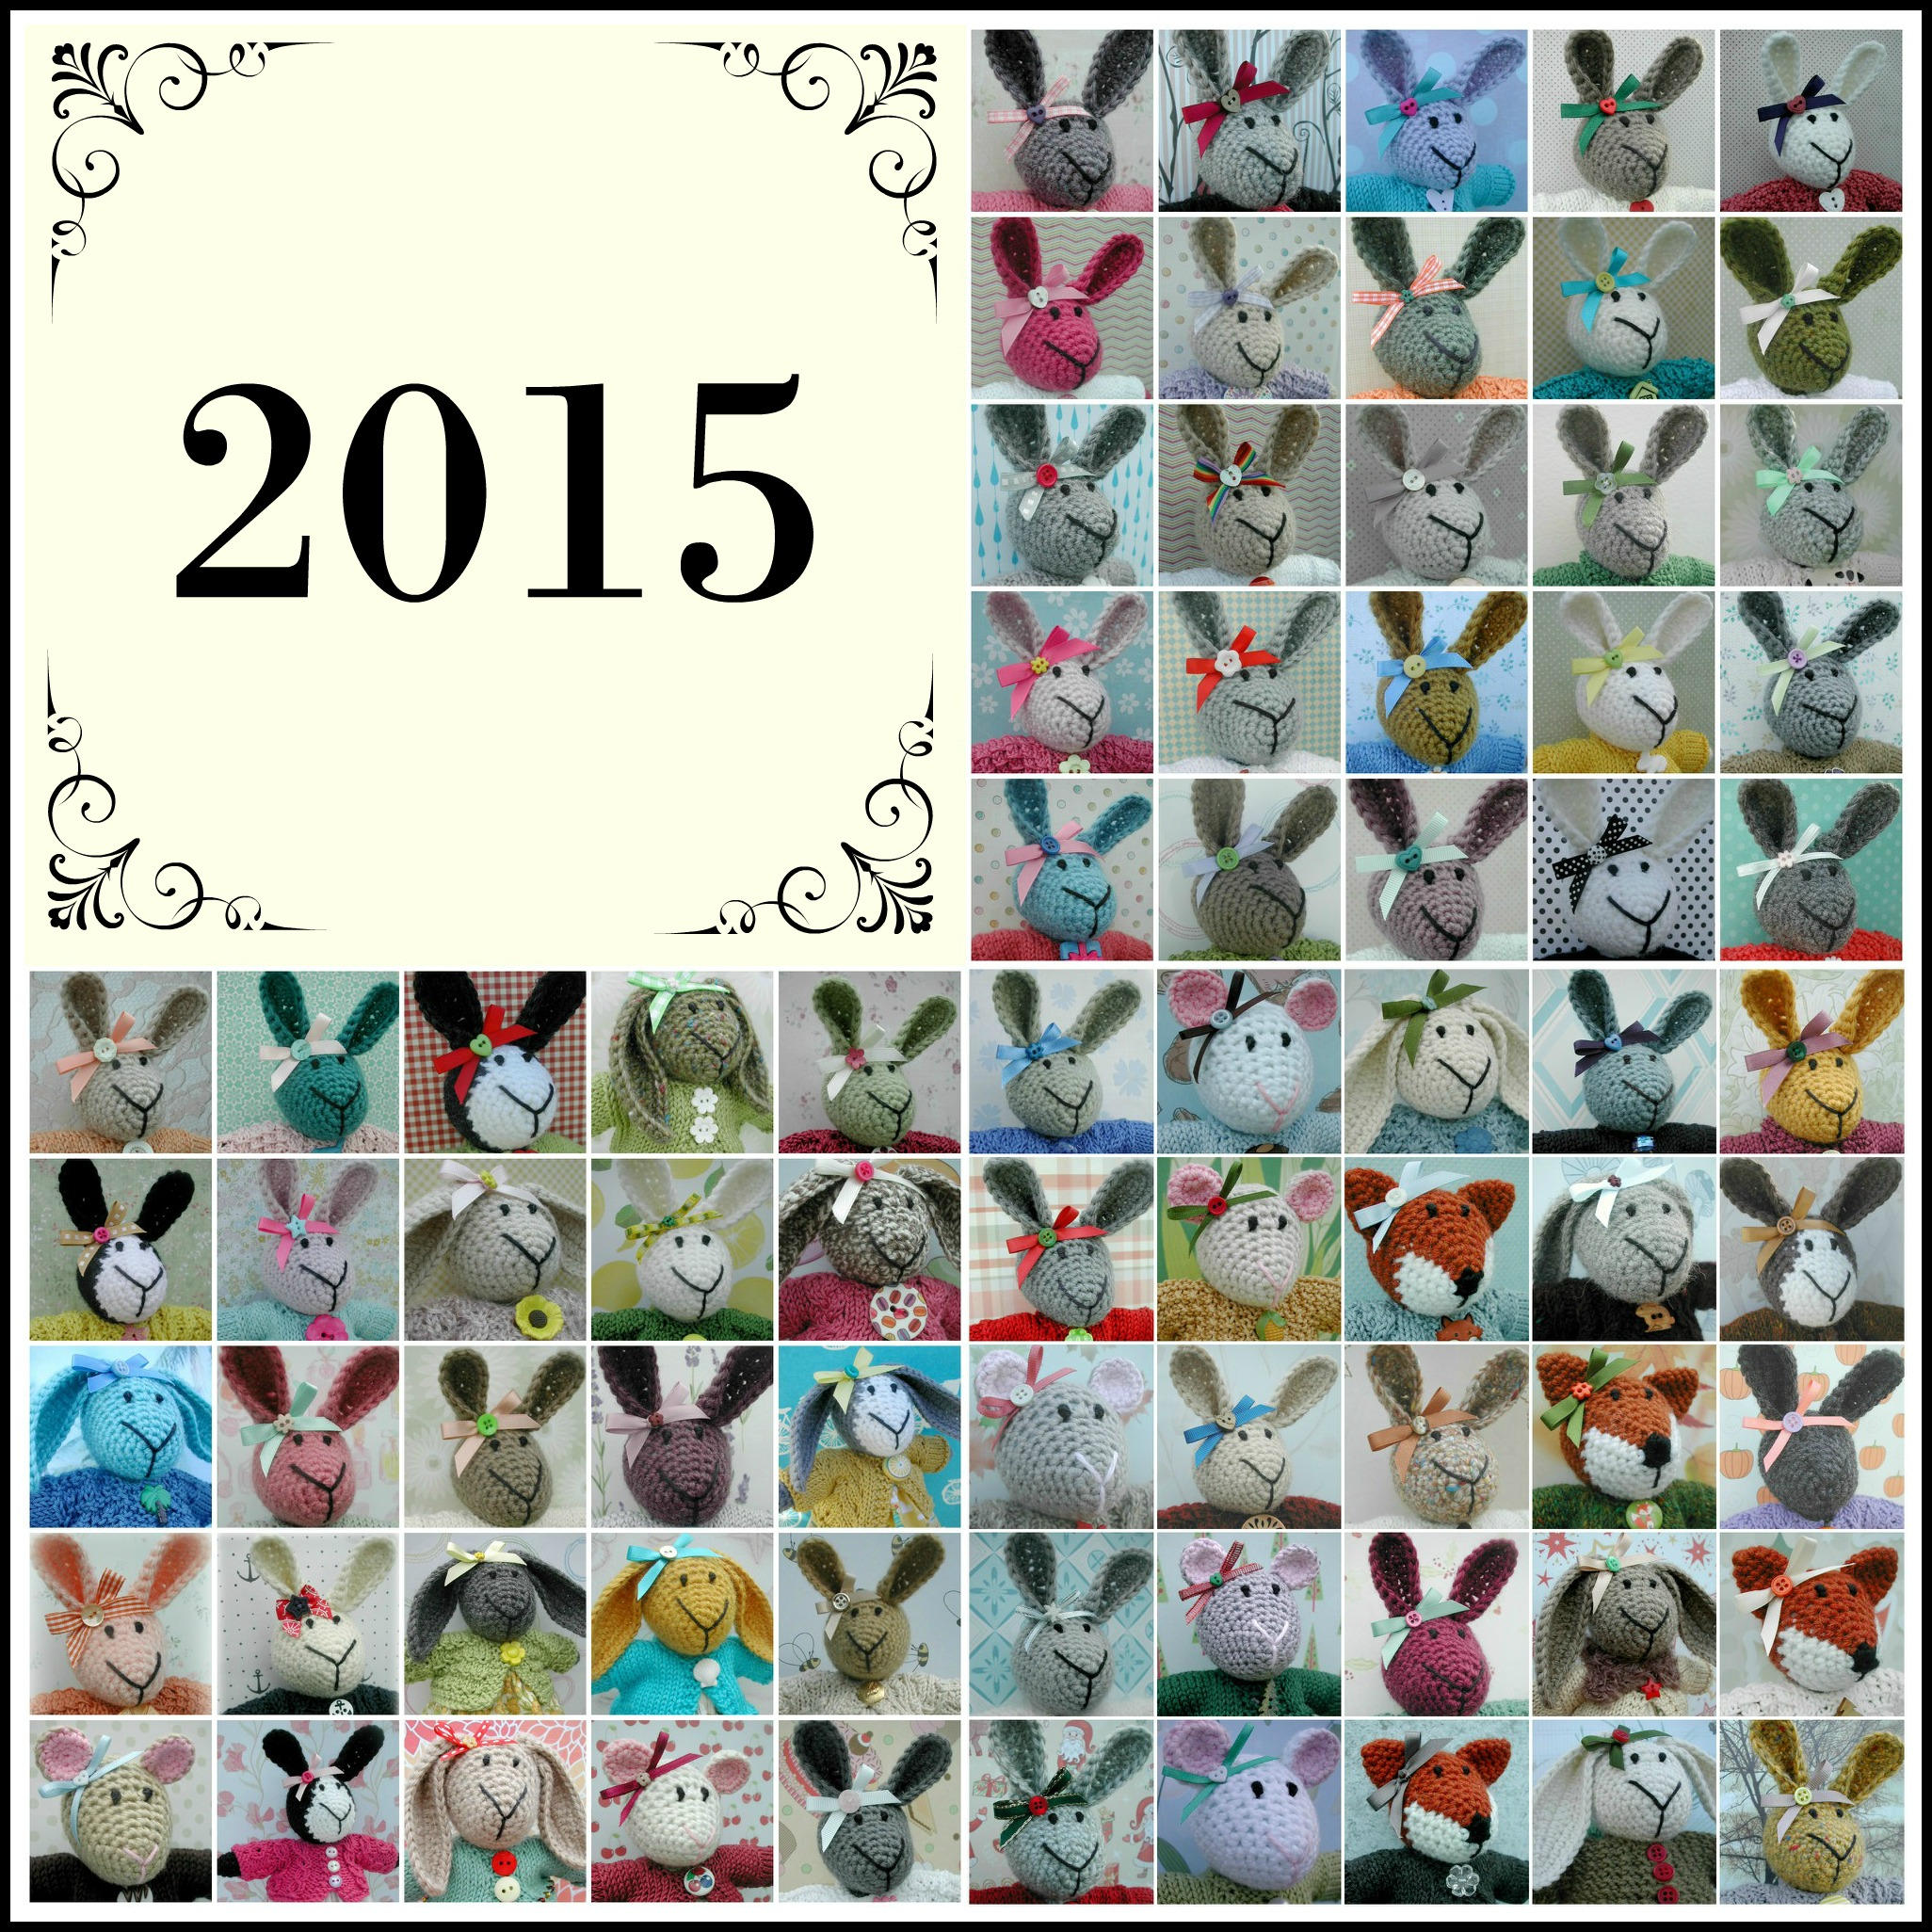 2015 Animal Collage